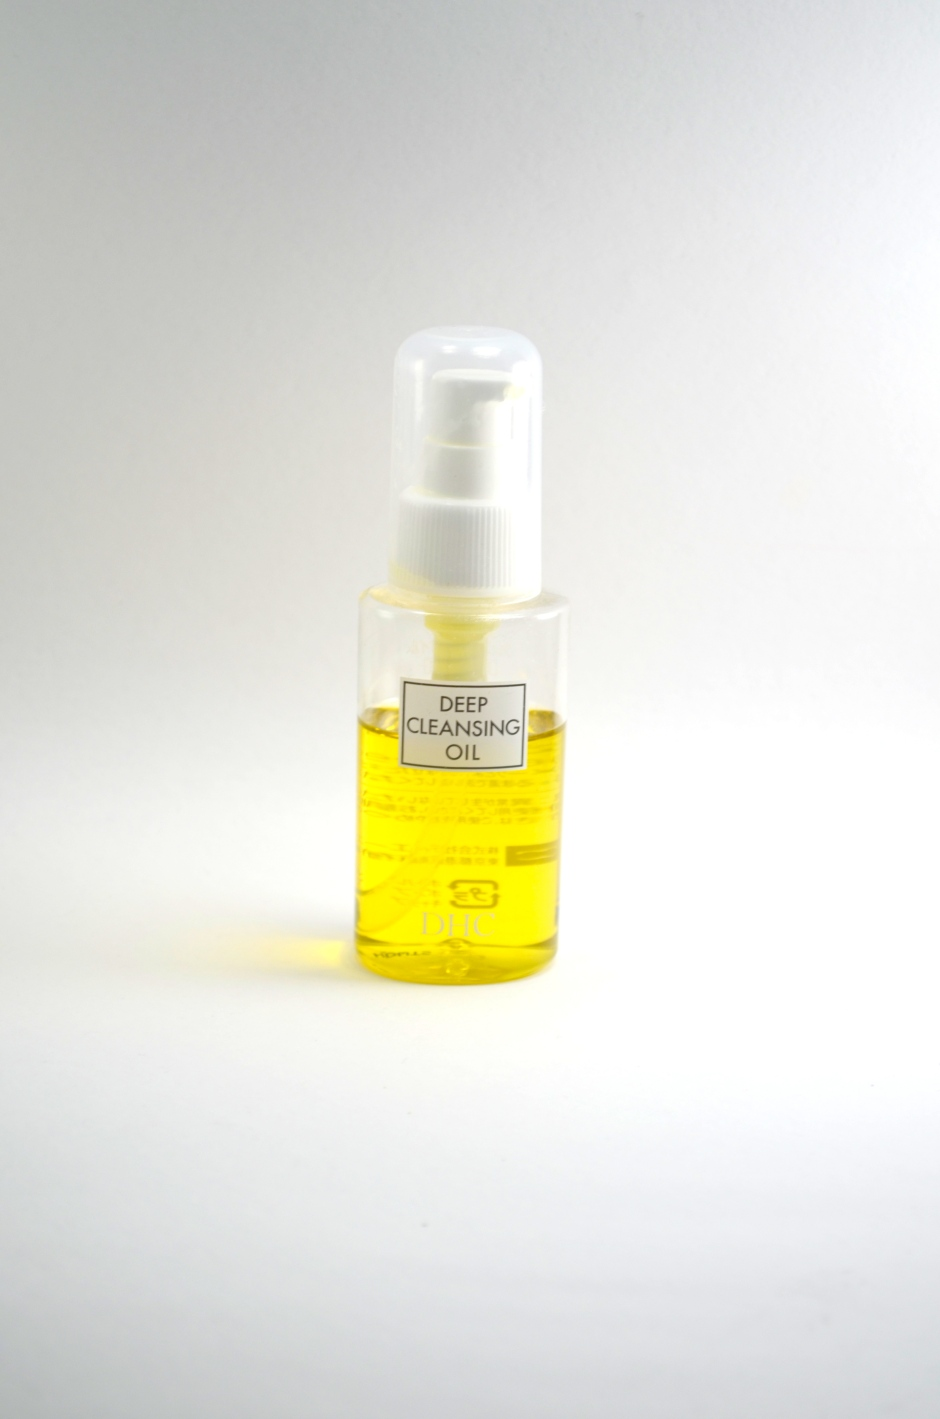 Deep Cleansing Oil by DHC #14